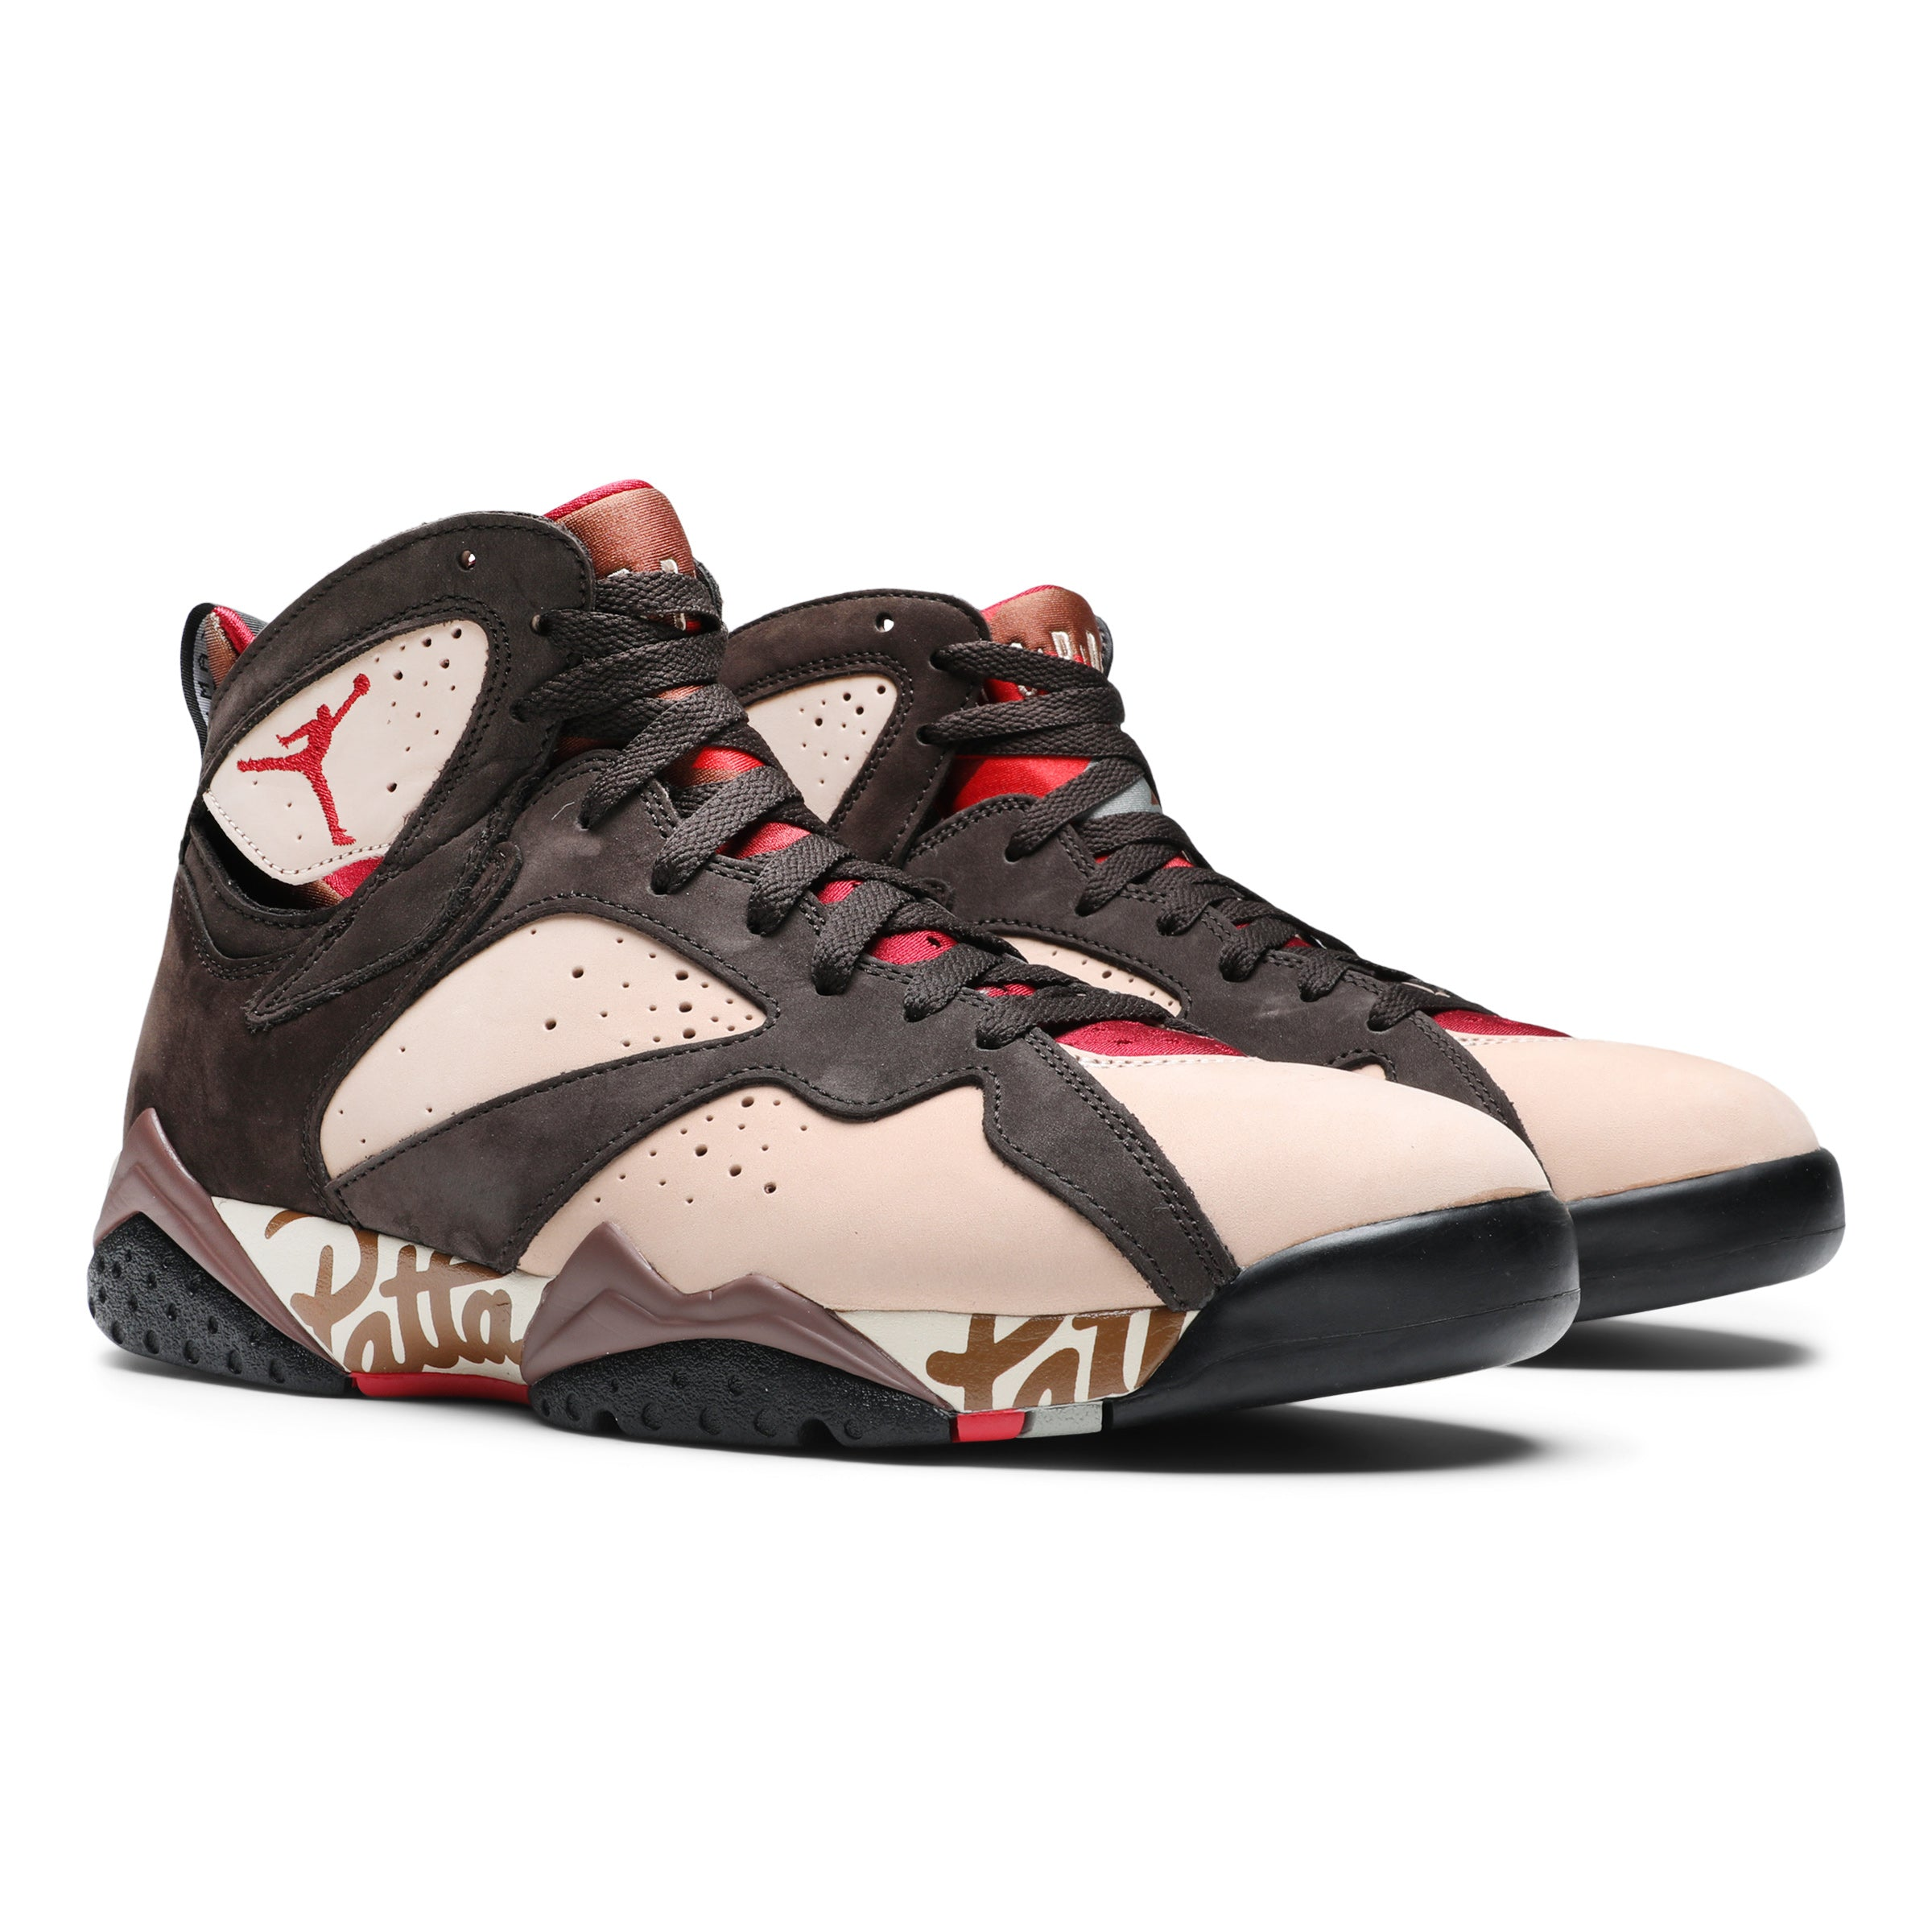 36f8cbbfcbbd7 Air Jordan x Patta 7 Retro SHIMMER/TOUGH RED-VELVET BROWN AT3375-200.  Retail: $200